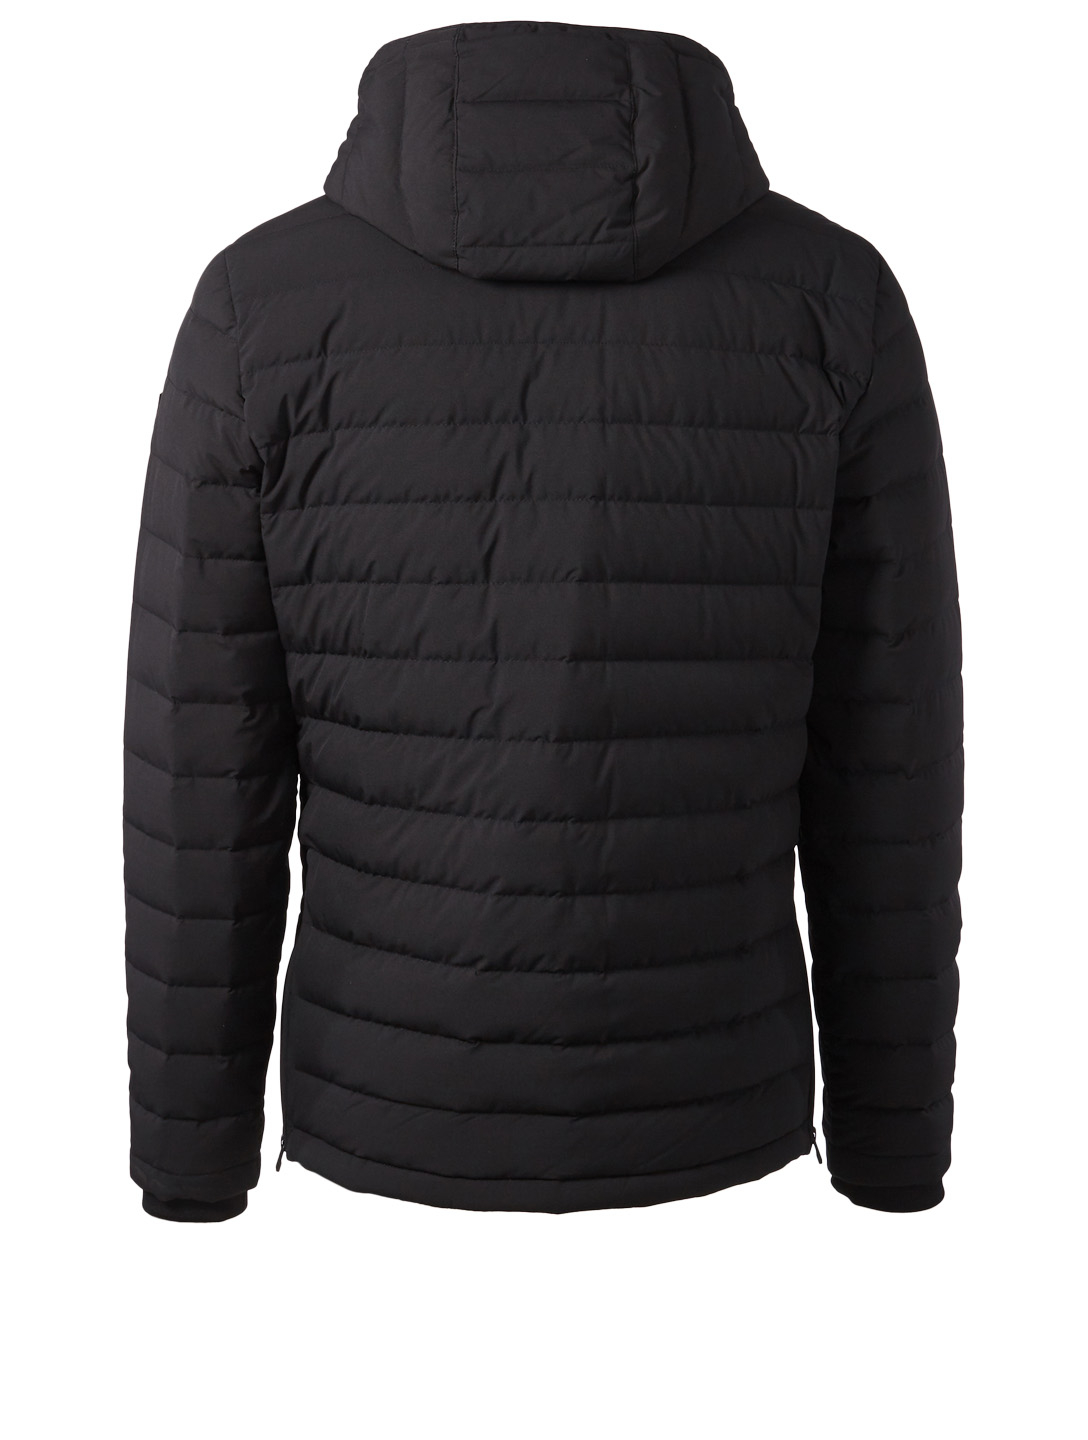 MOOSE KNUCKLES Fullcrest Down Coat Men's Black